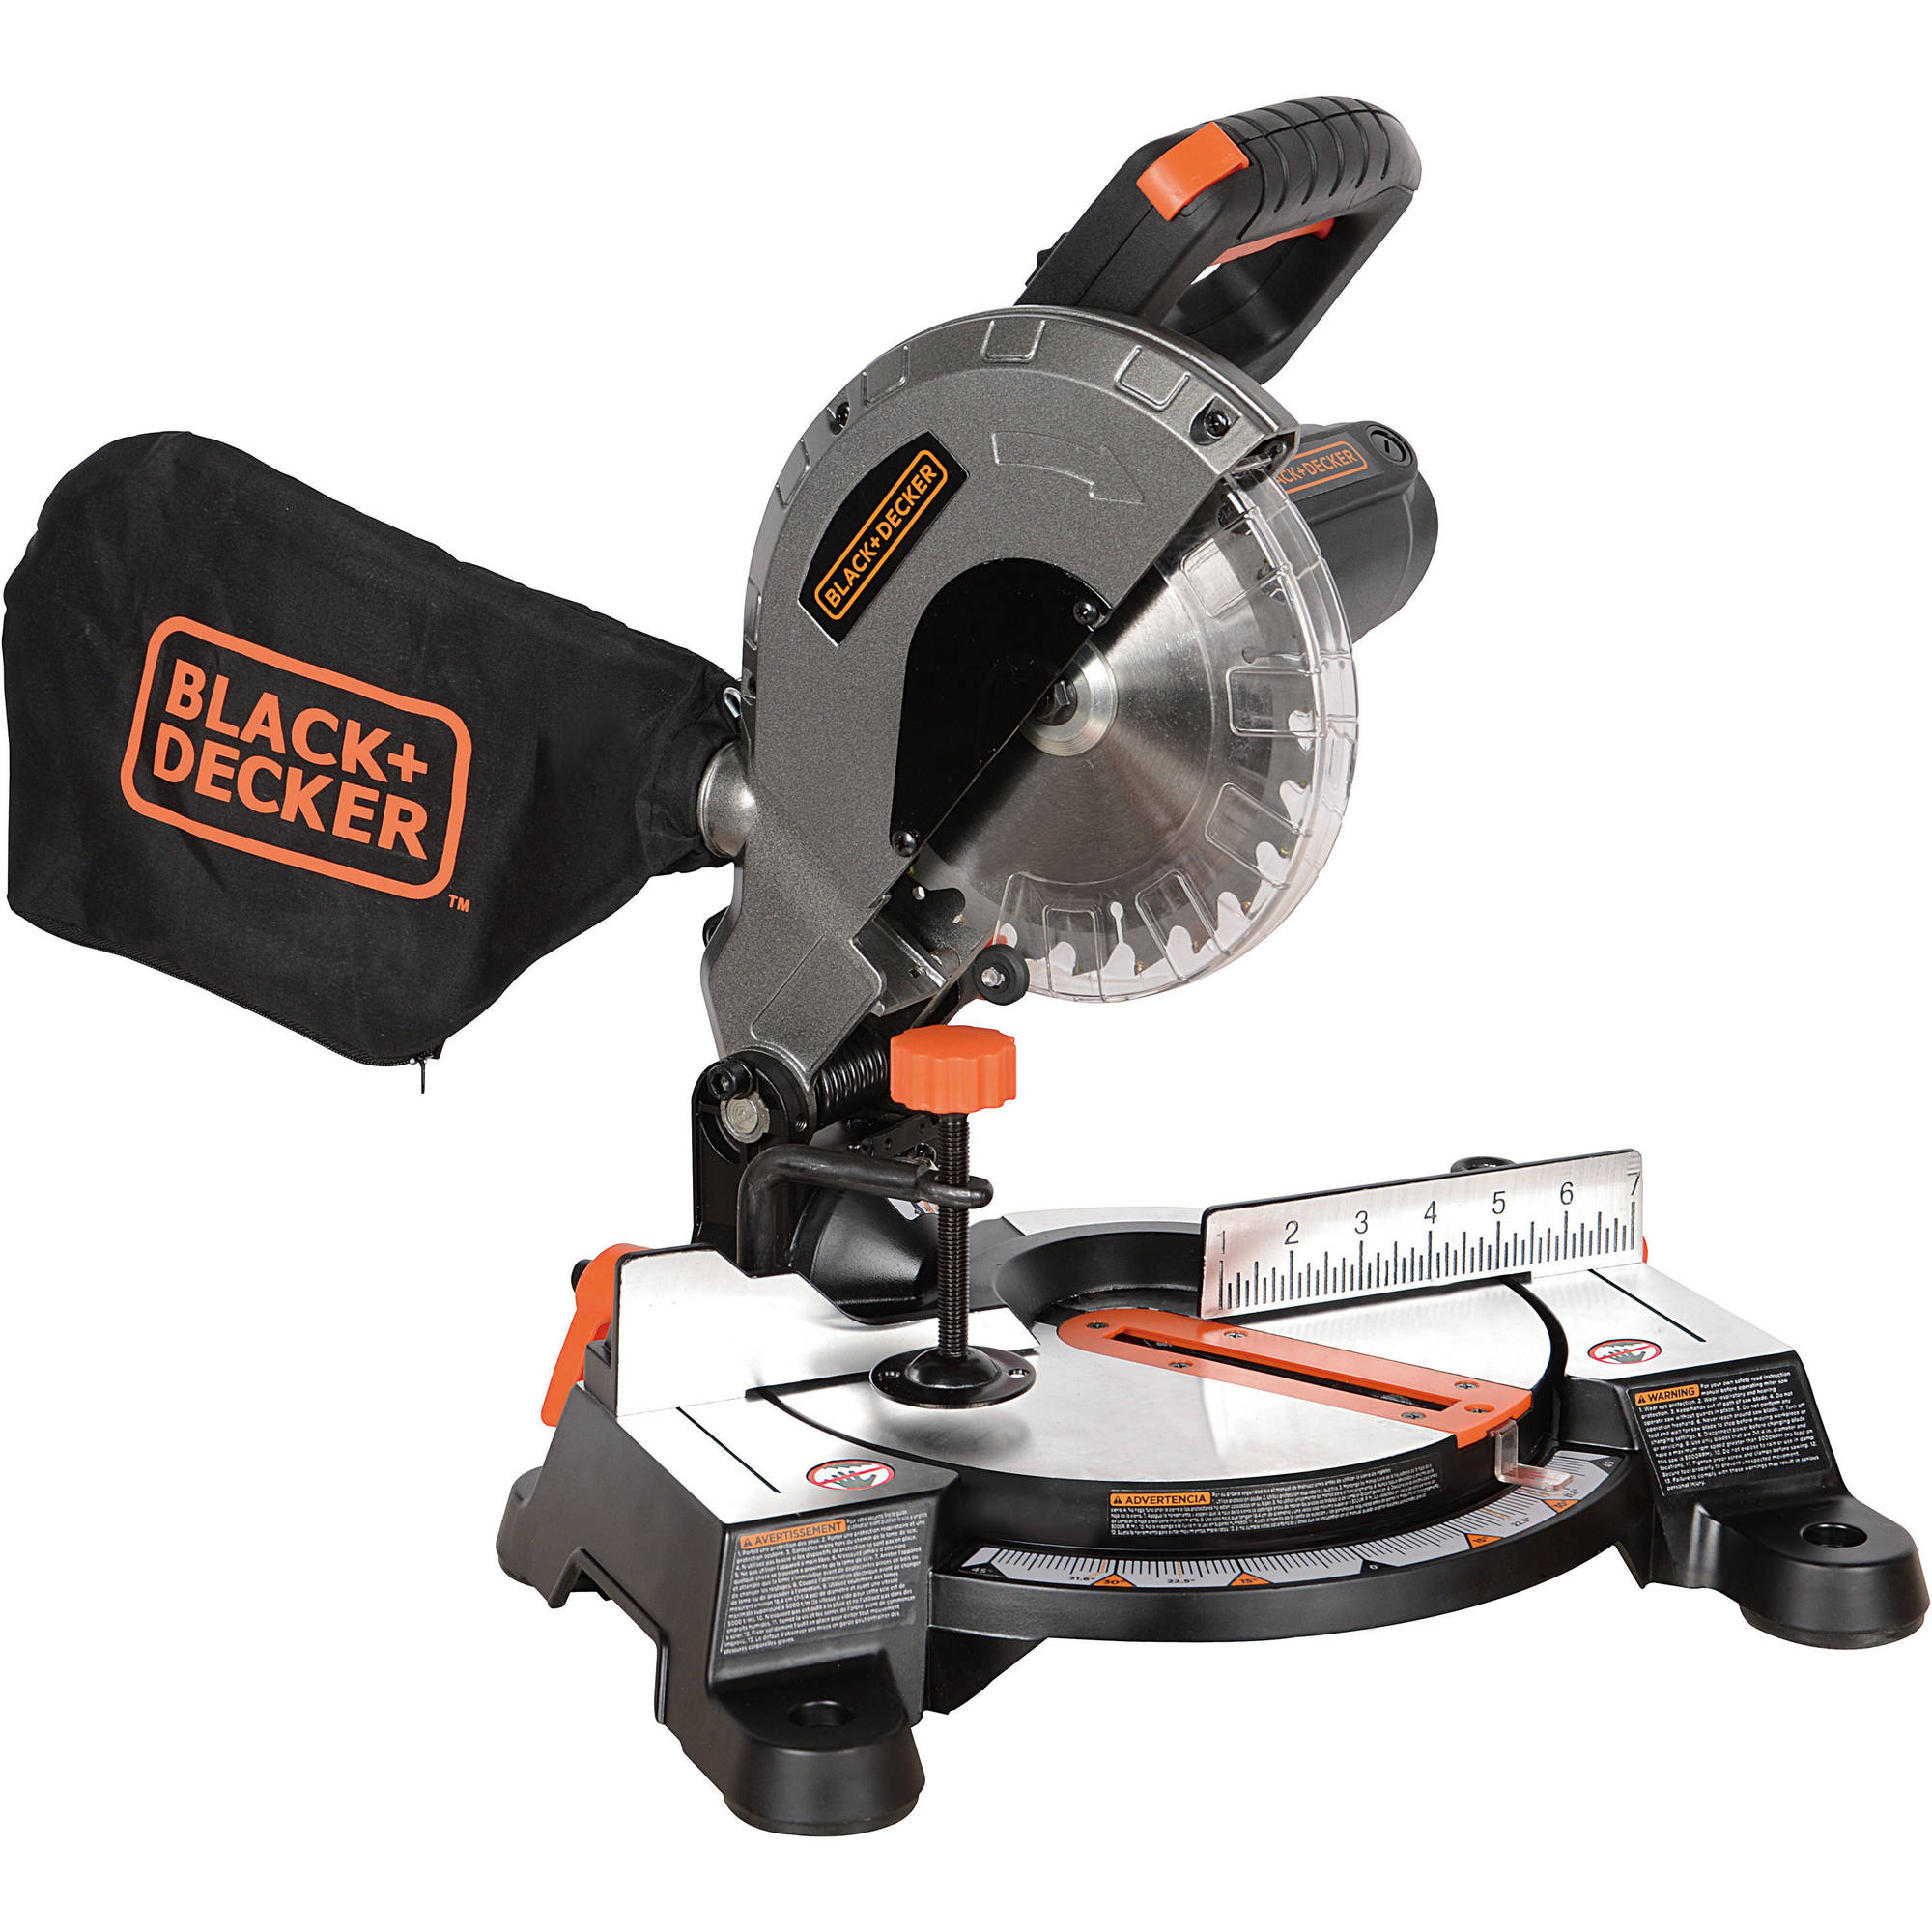 "Black and Decker 7-1/4"" Compound Miter Saw"